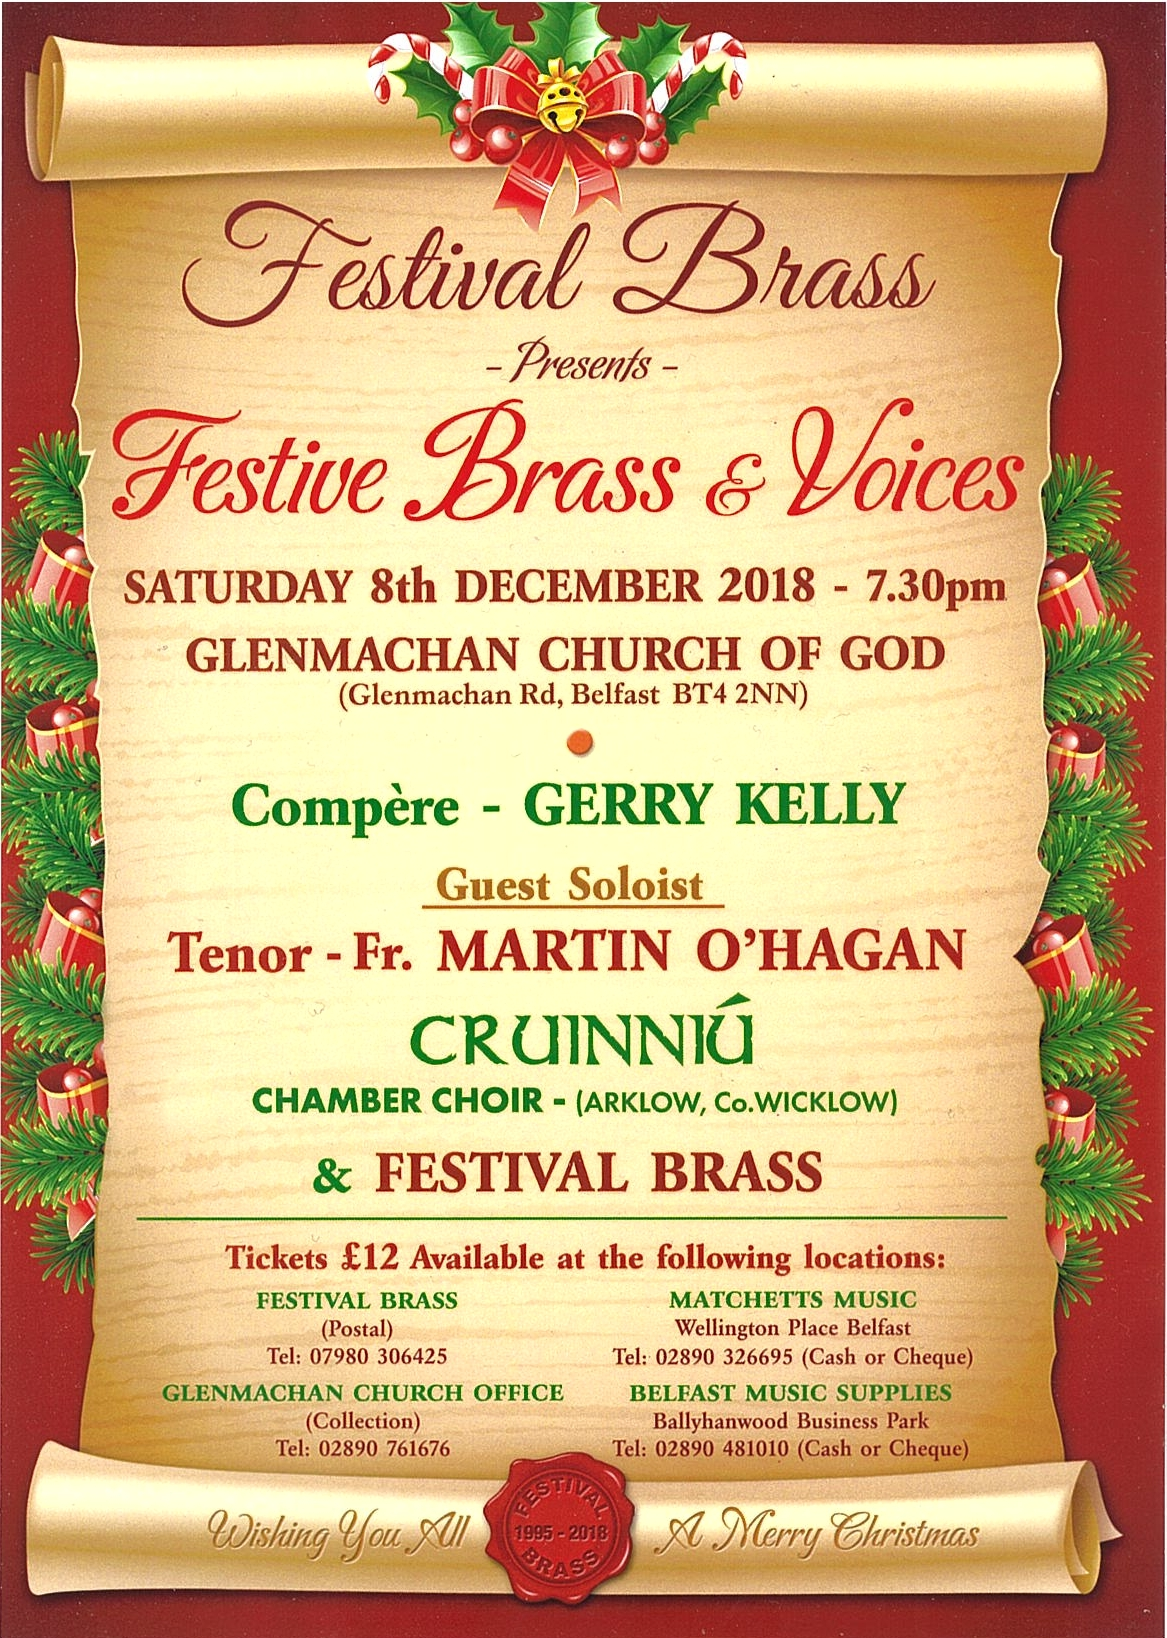 Festive Brass and Voices on 8th December 2018